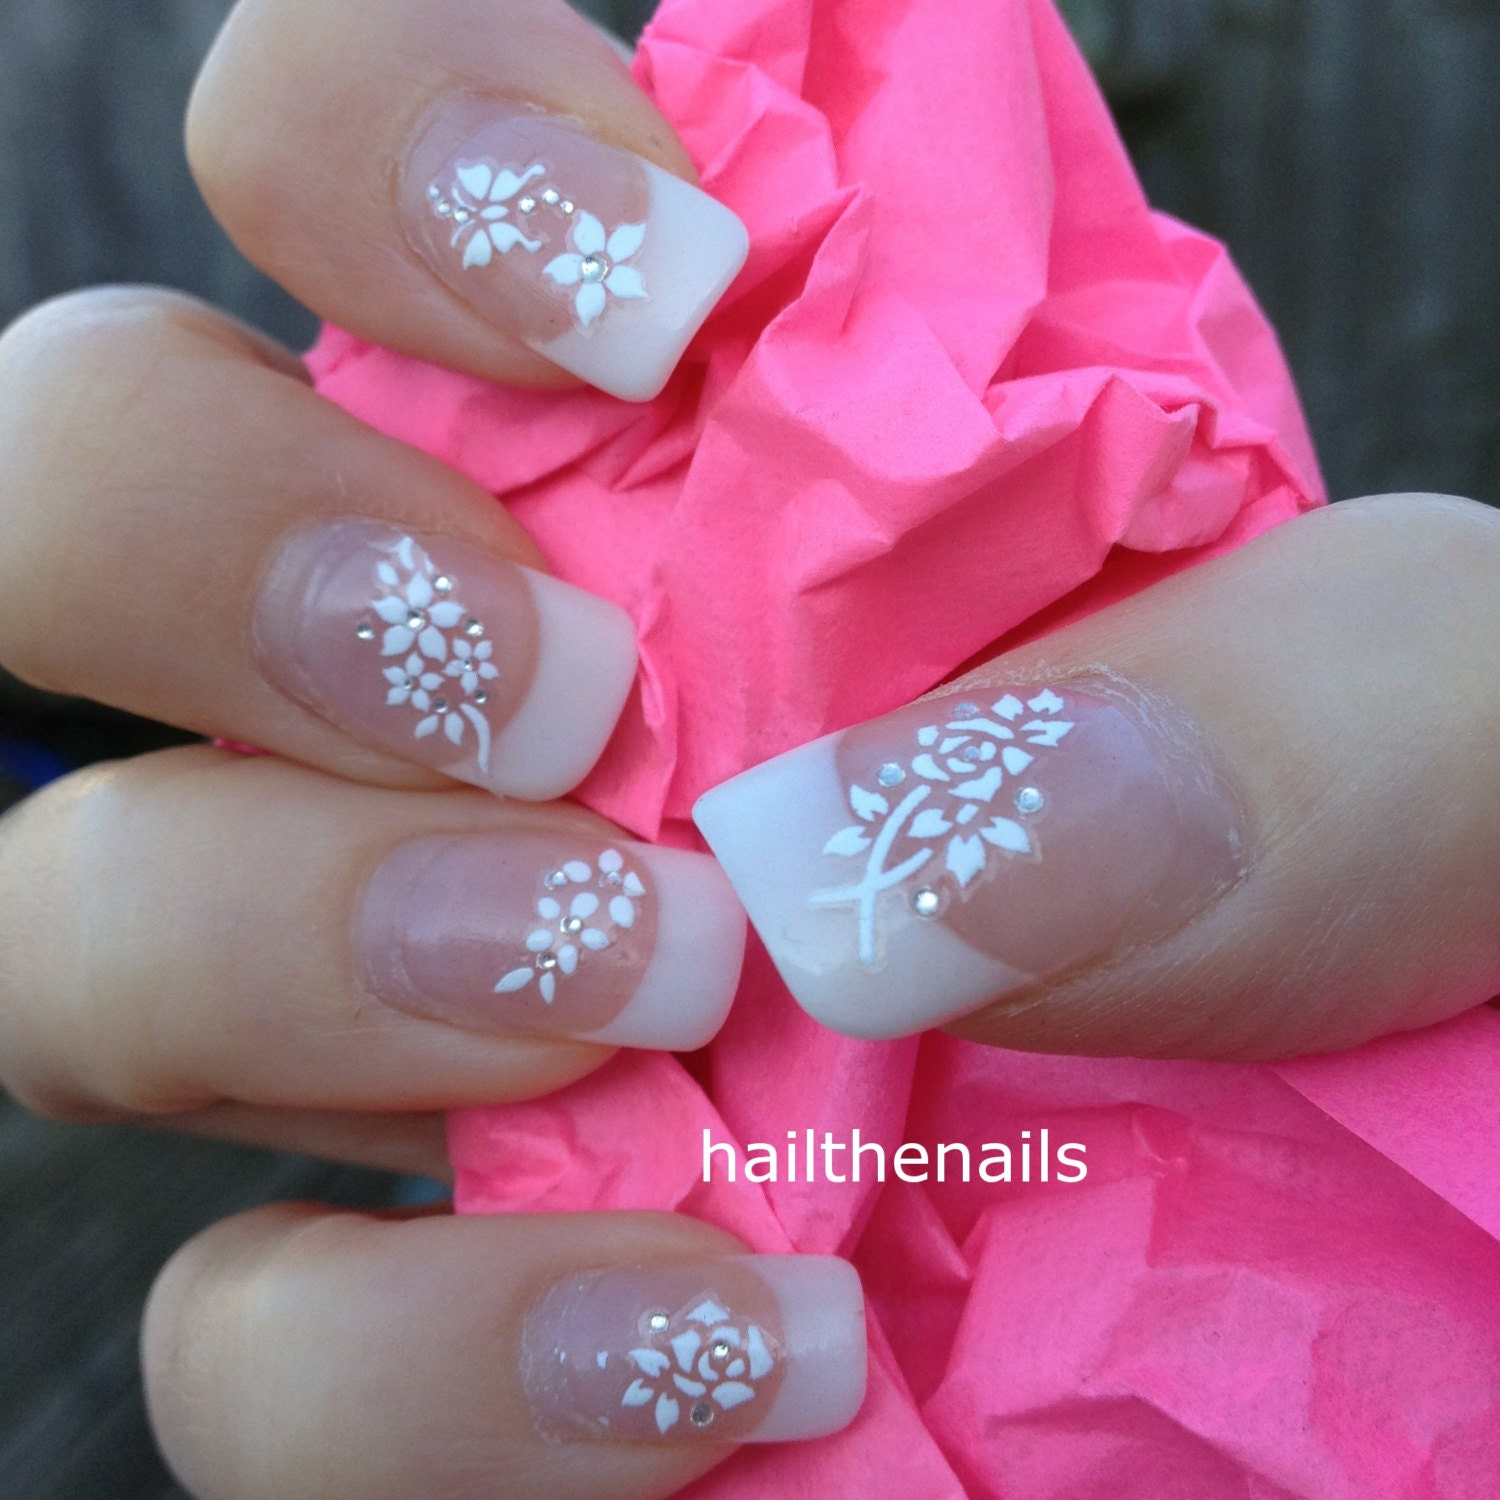 Nail art design with stickers little blue bird with pink floral view images white nail art stickers prinsesfo Choice Image